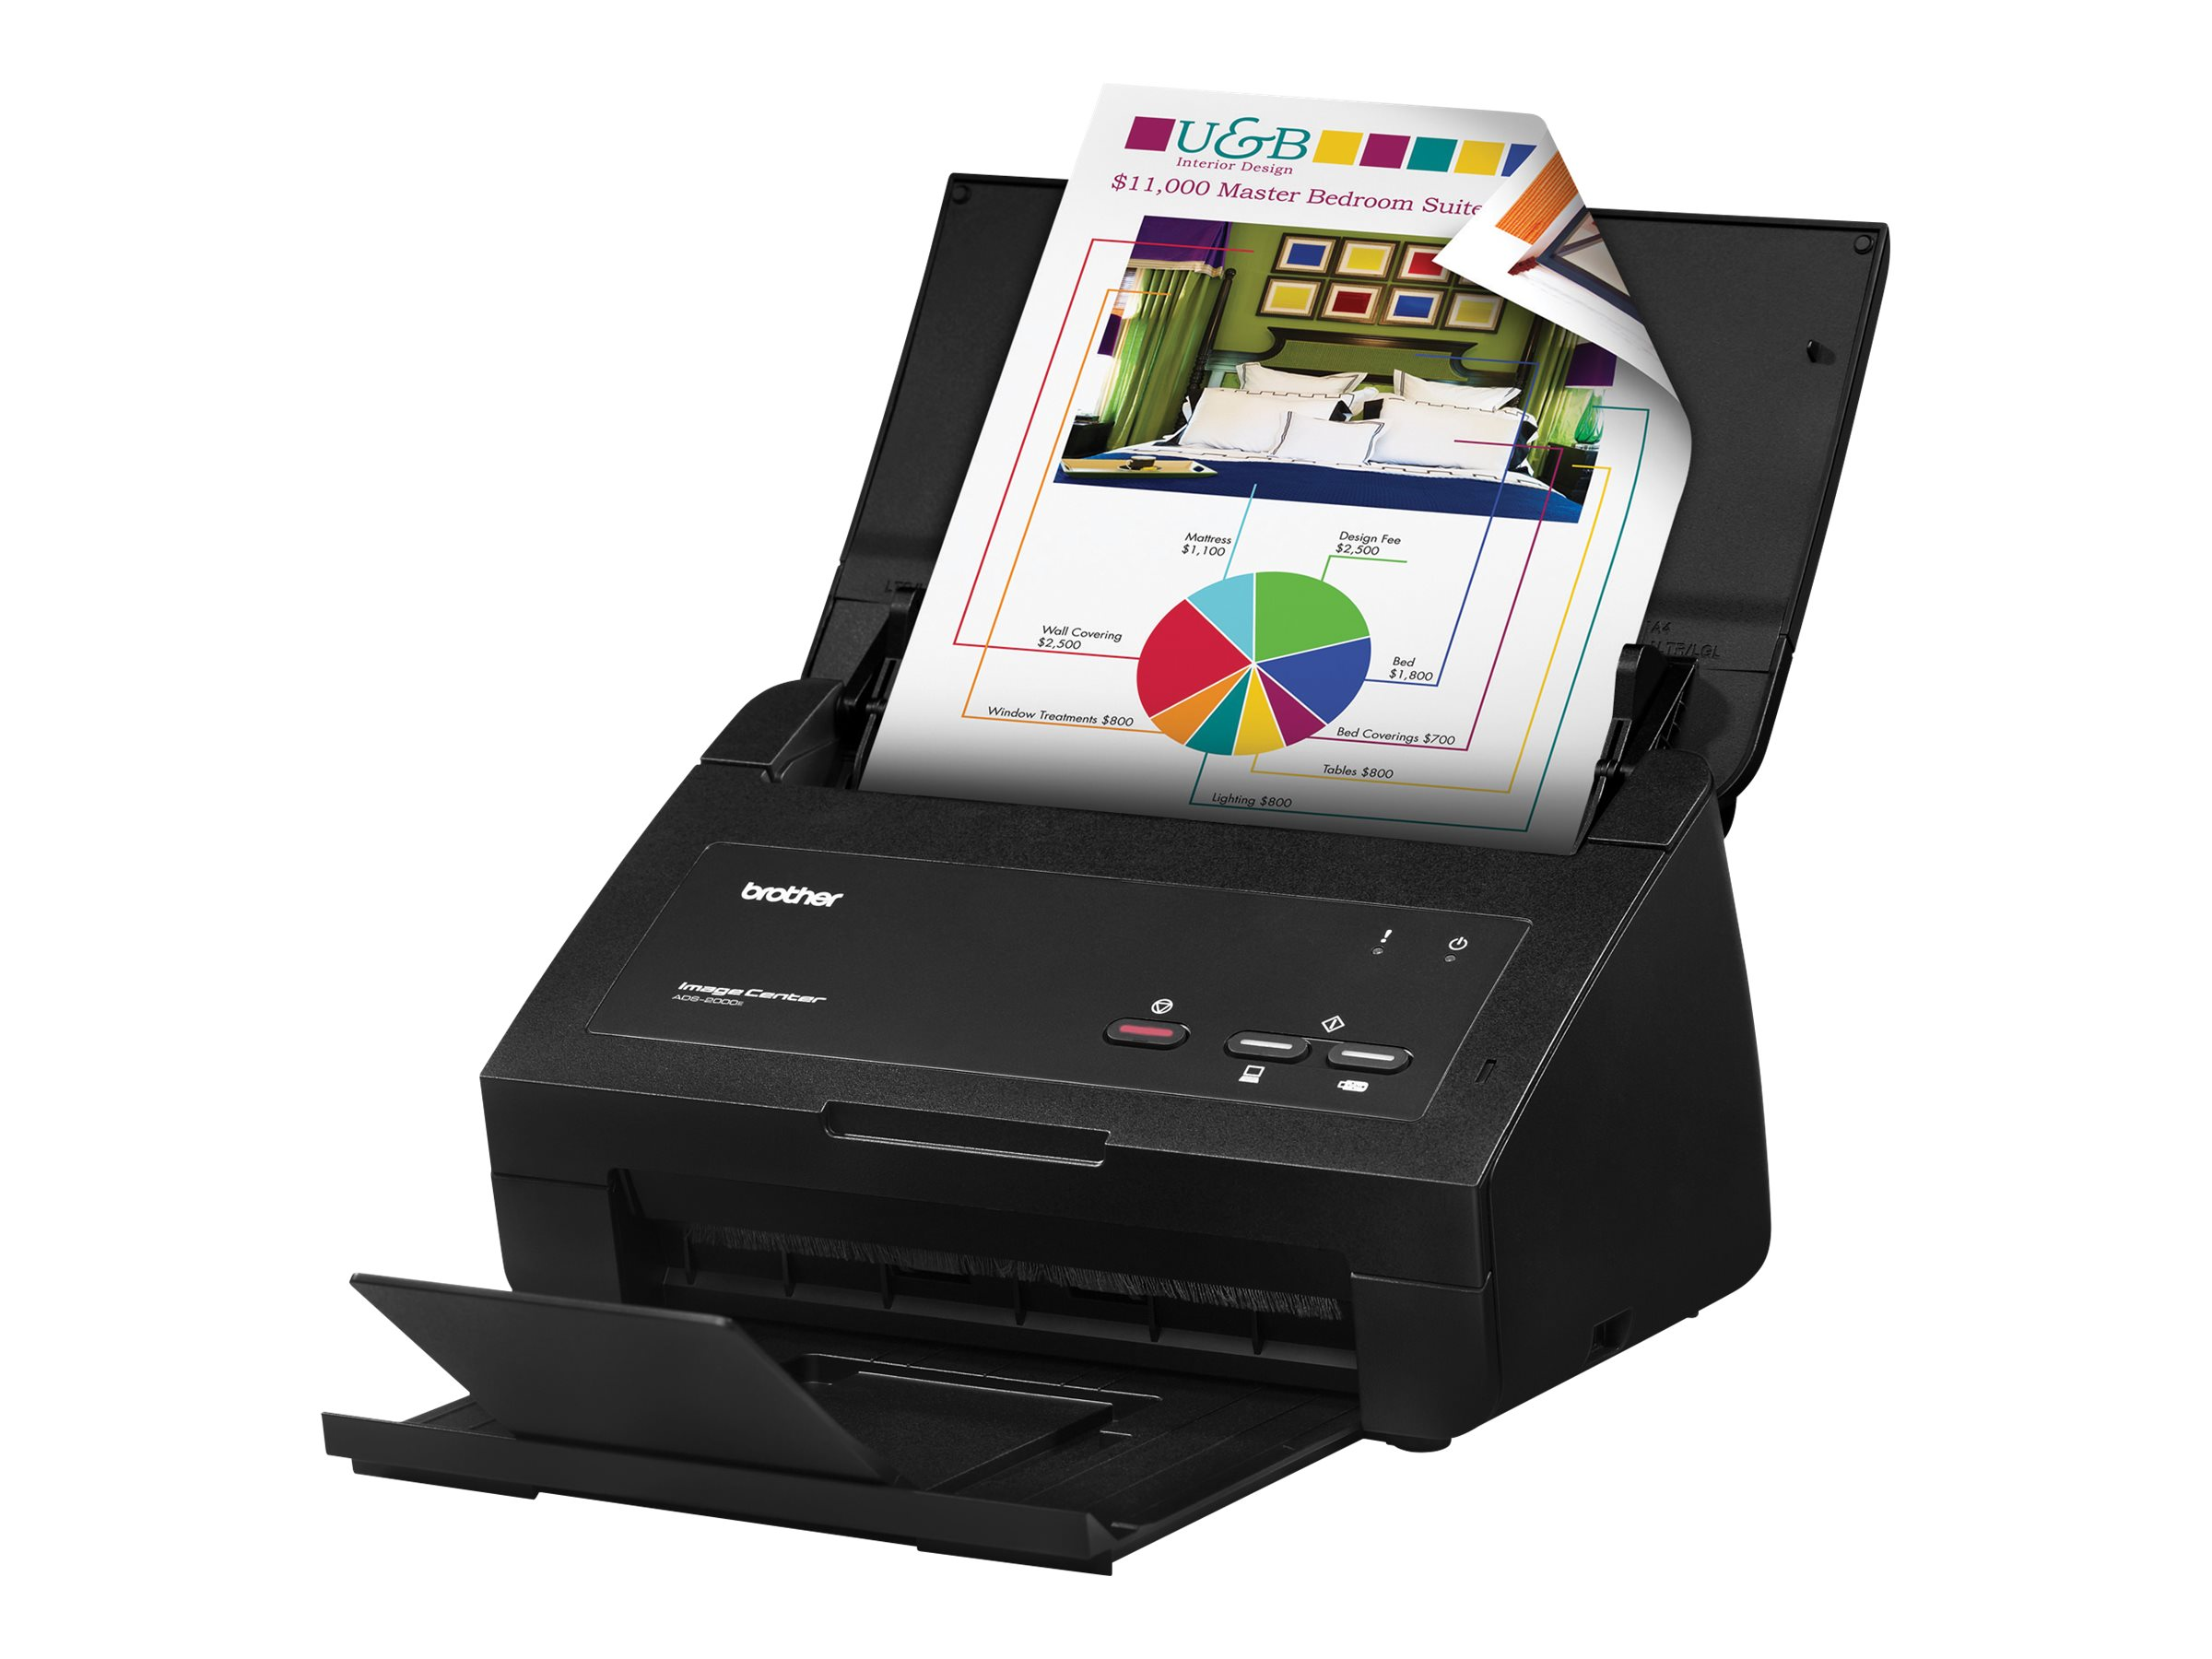 Brother ImageCenter ADS-2000 High Speed Desktop Duplex Color Scanner